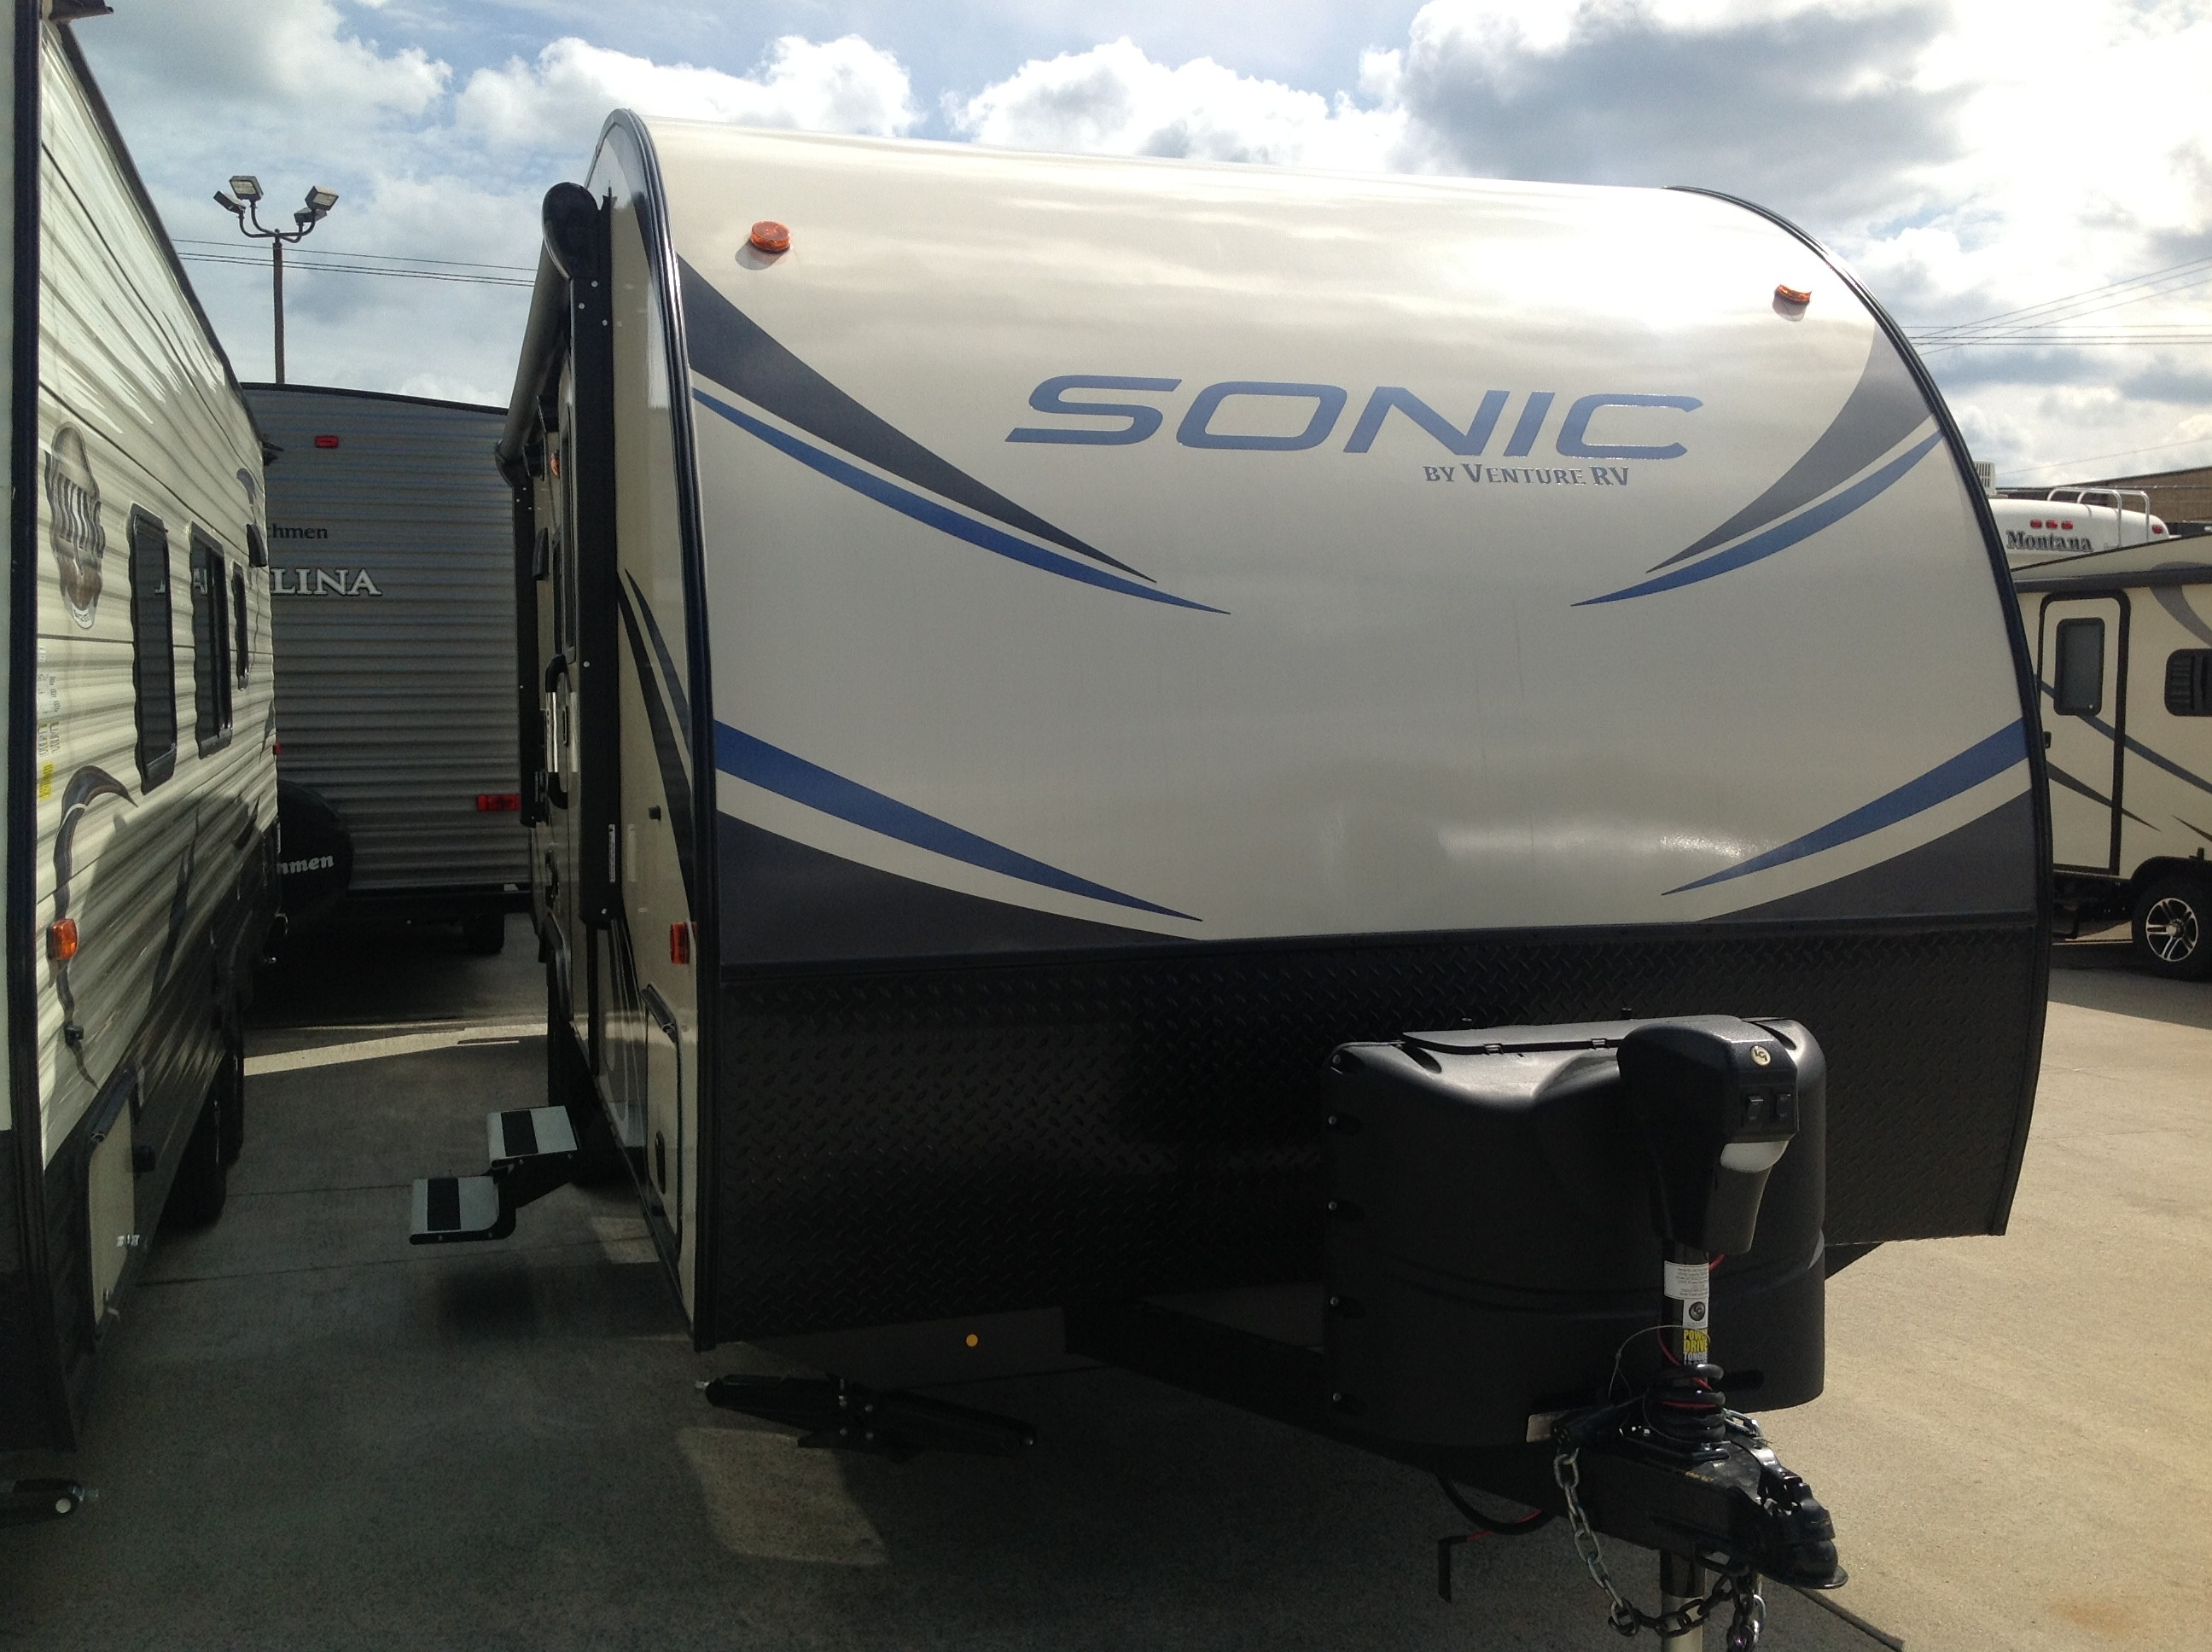 New 2019 Sonic 220 Vbh In Warren Mi Sonac Wiring Diagram Click Here For Larger Image